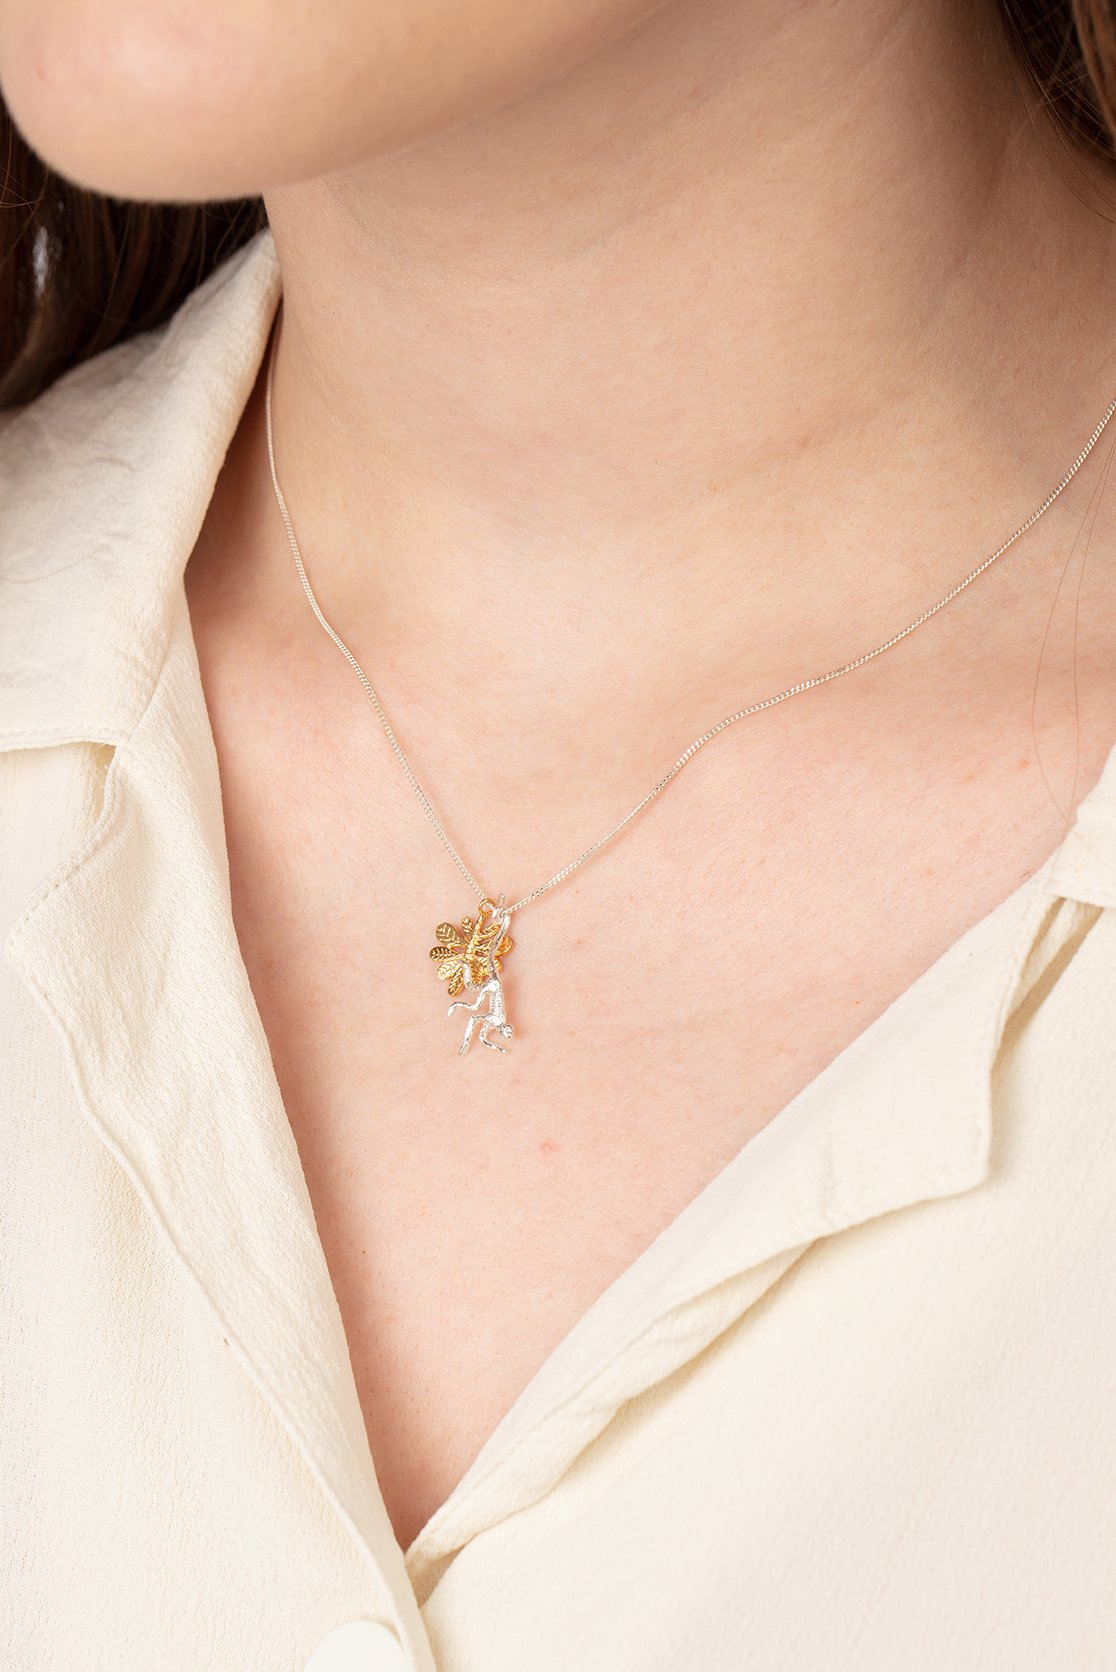 Spider monkey necklace